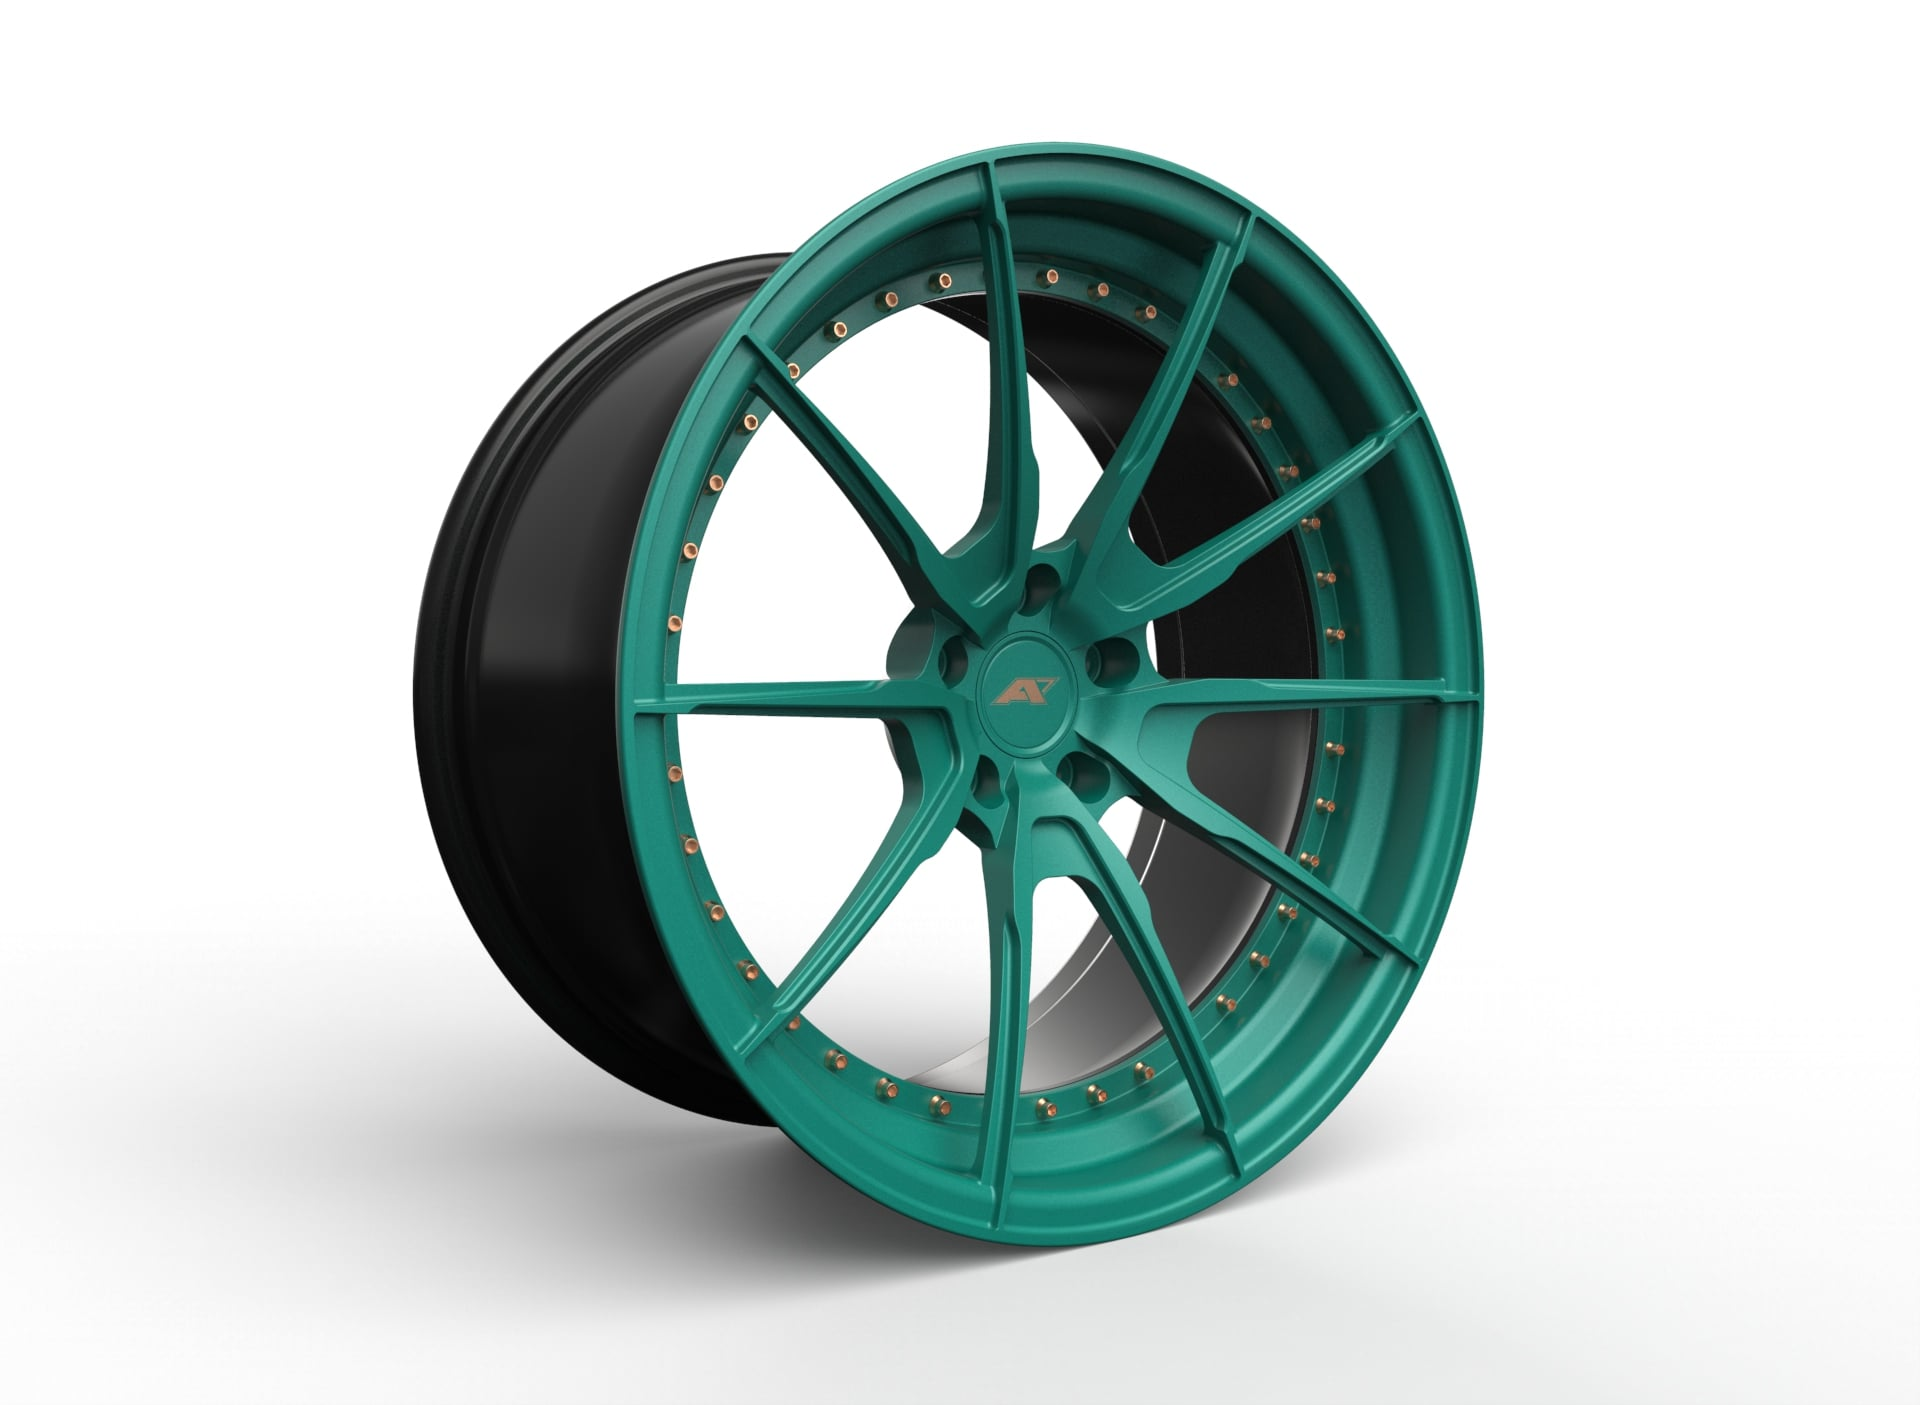 alphamale_wheels_4.484.jpg